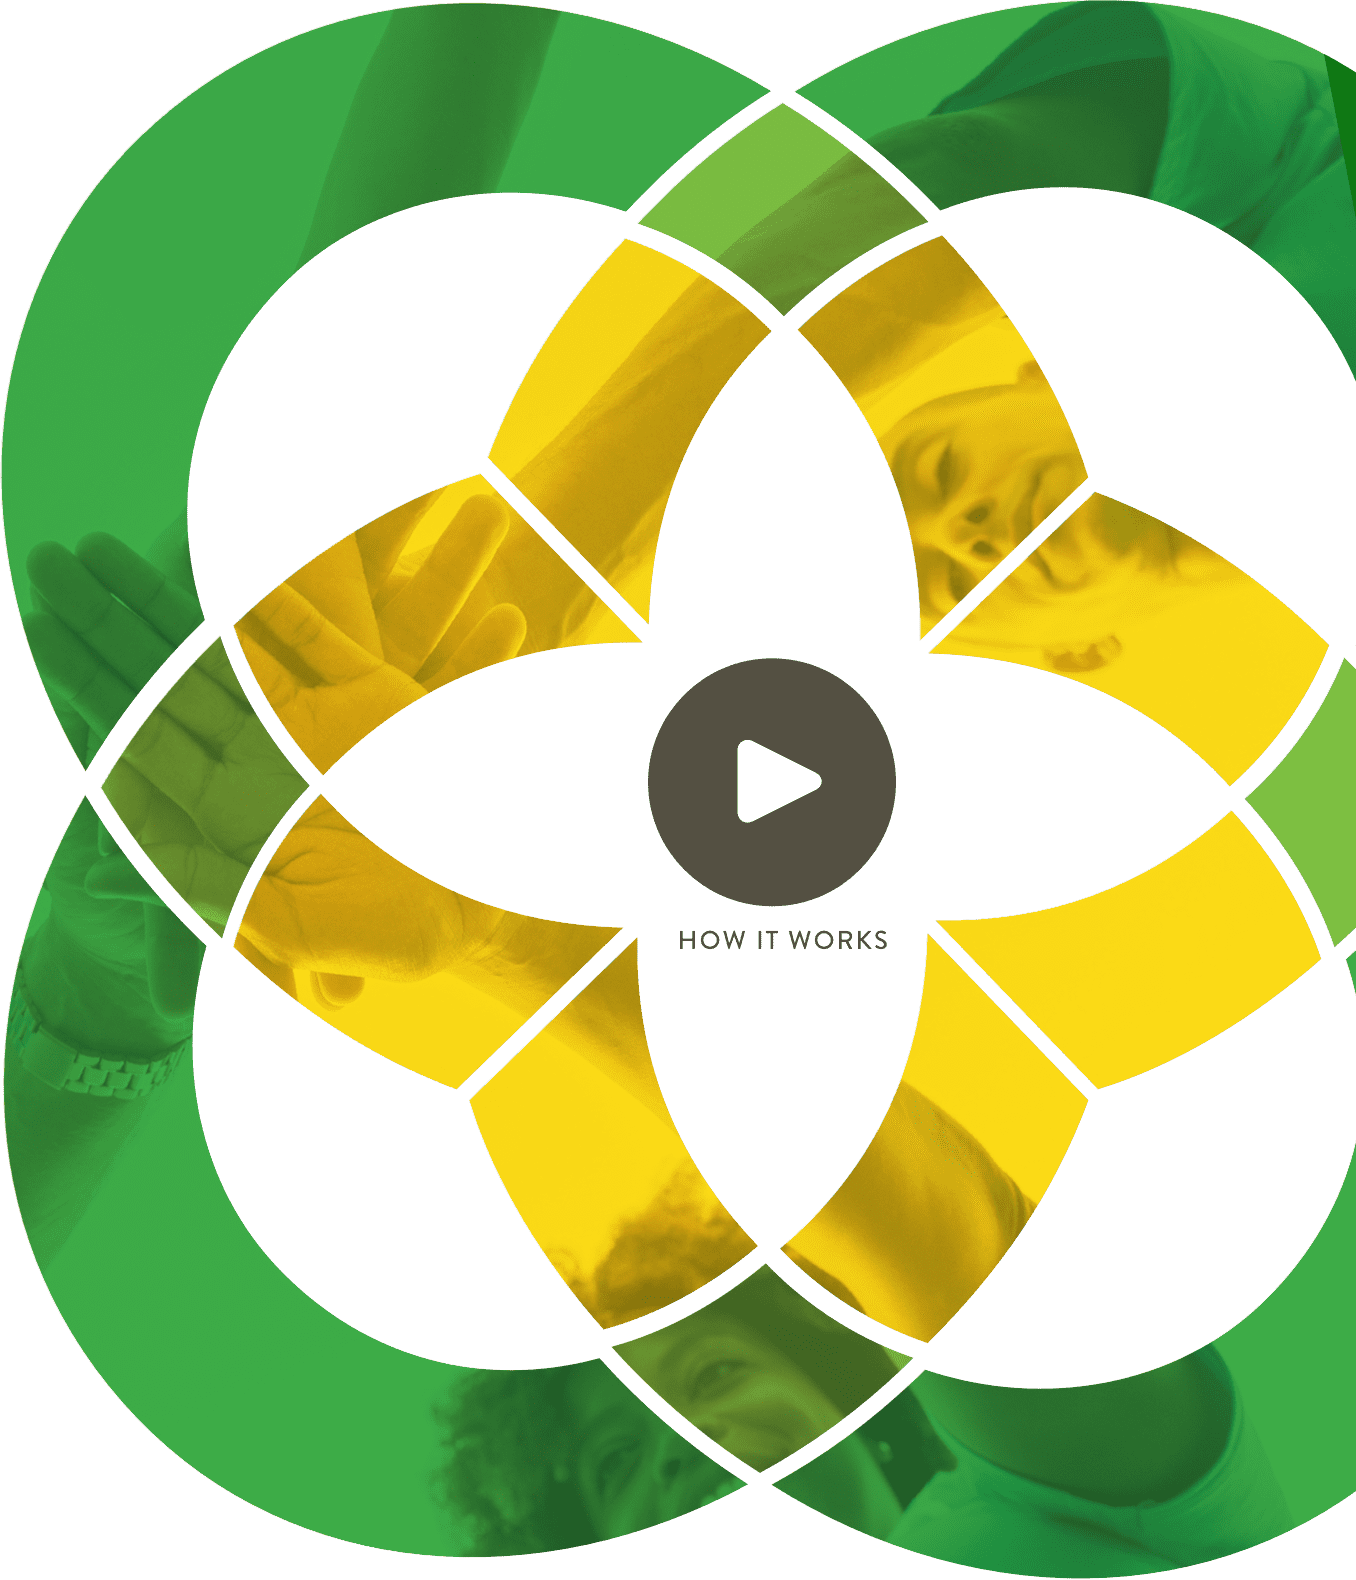 community foundation flower logo with a video play button inside